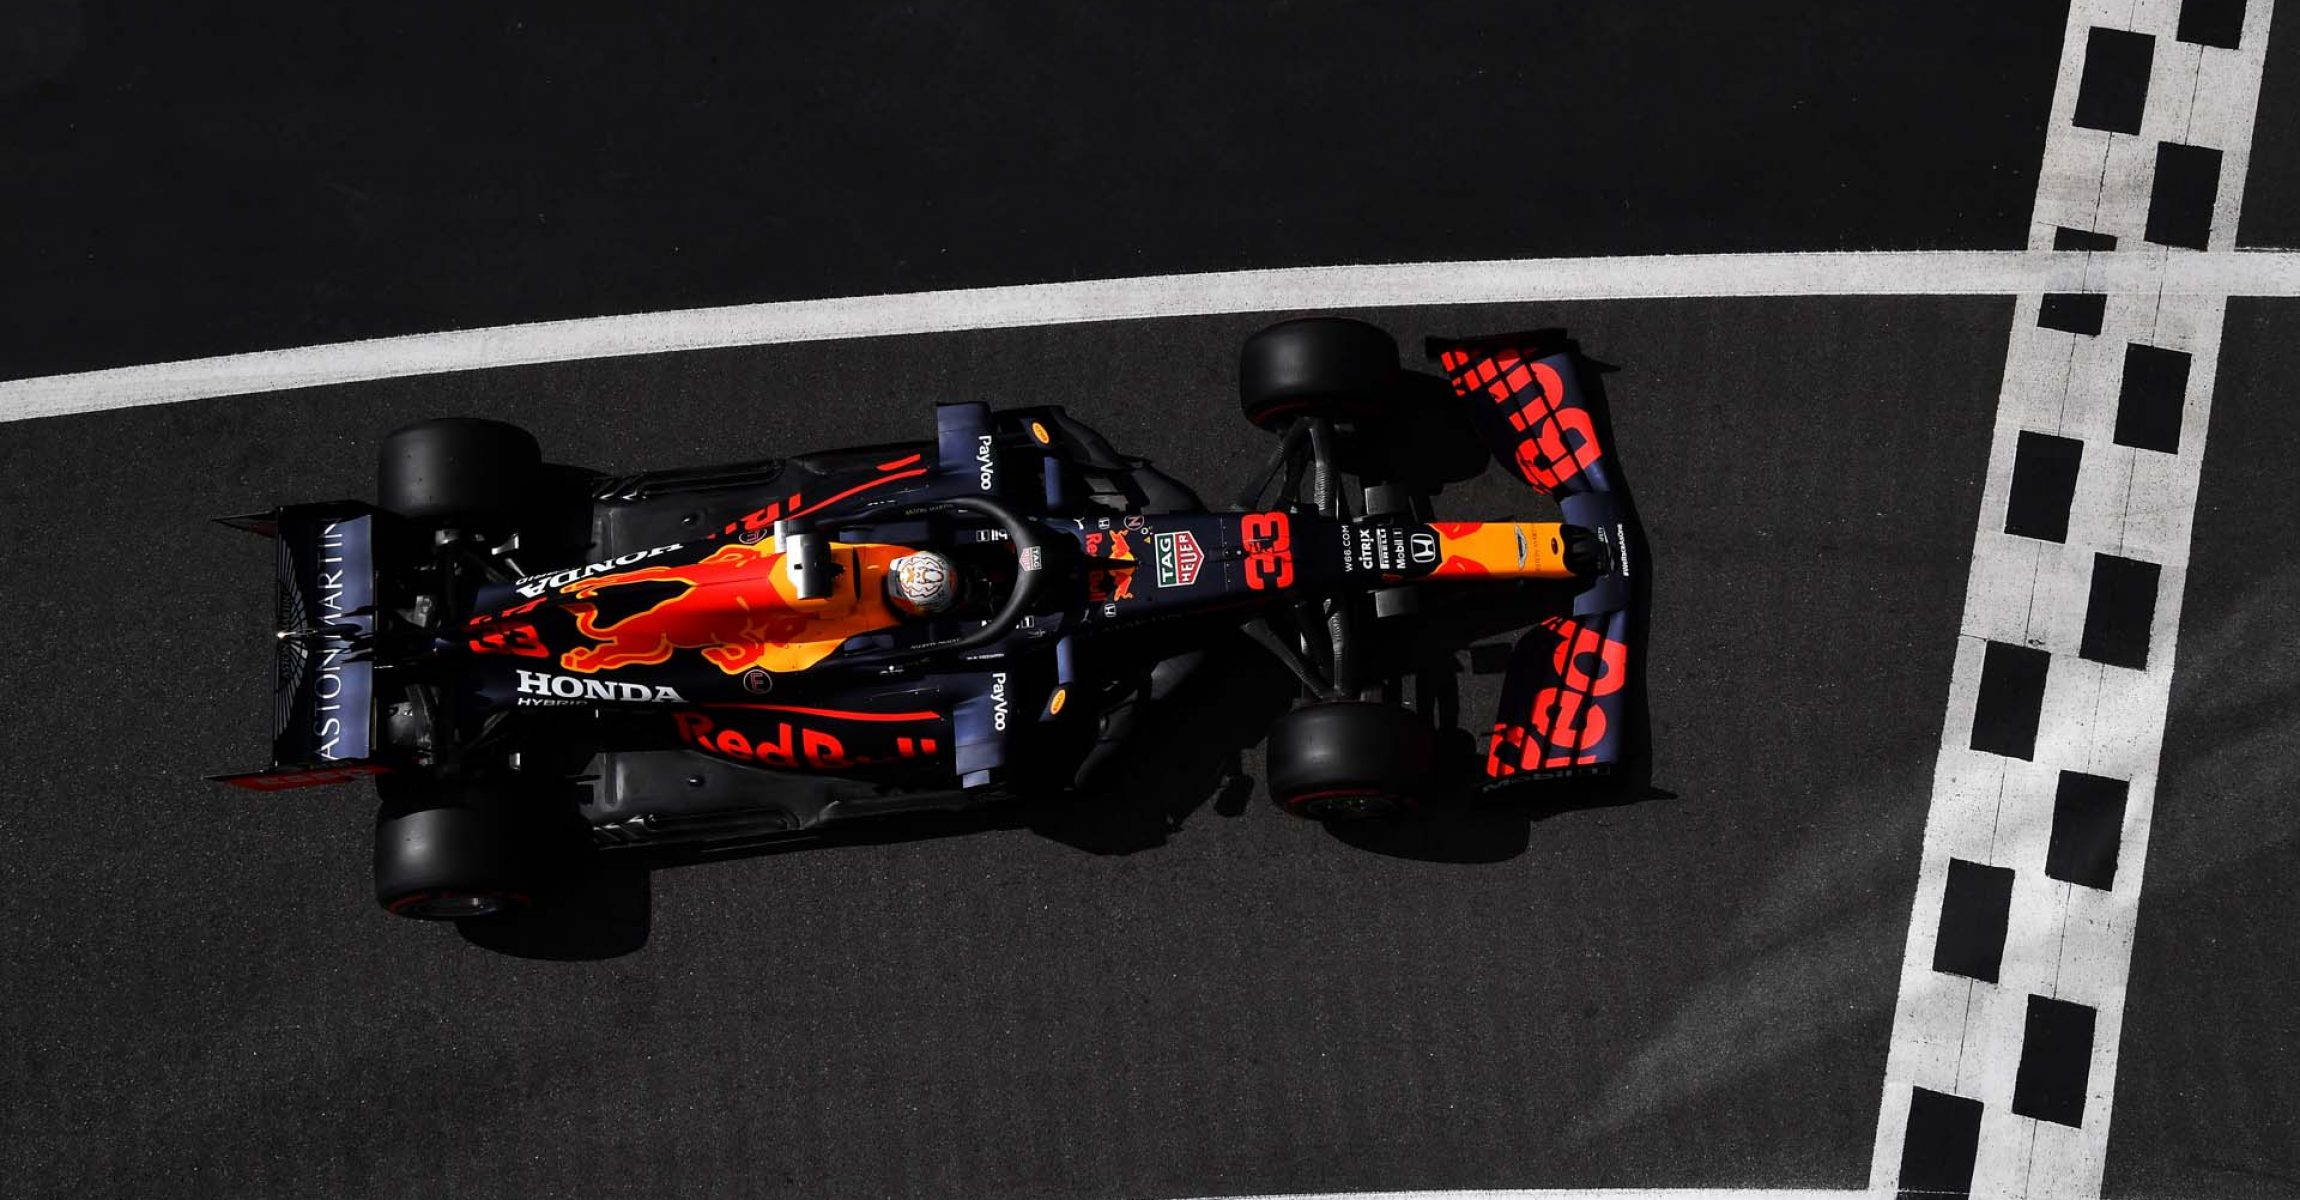 NORTHAMPTON, ENGLAND - AUGUST 01: Max Verstappen of the Netherlands driving the (33) Aston Martin Red Bull Racing RB16 comes into the pit lane during qualifying for the F1 Grand Prix of Great Britain at Silverstone on August 01, 2020 in Northampton, England. (Photo by Ben Stansall/Pool via Getty Images)